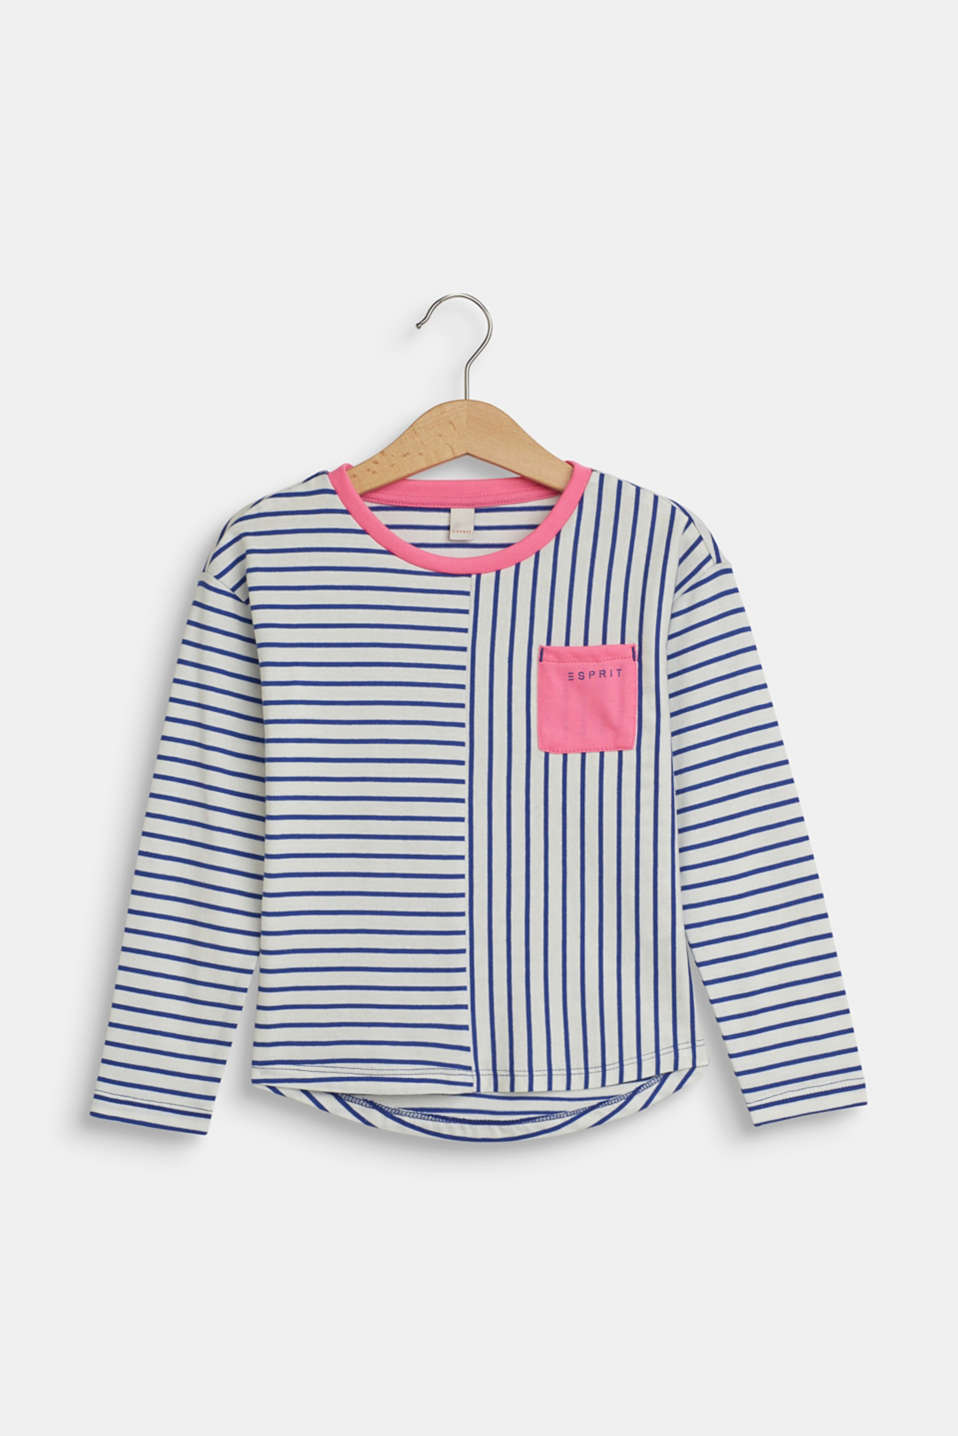 Esprit - Long sleeve top with colour accents, 100% cotton